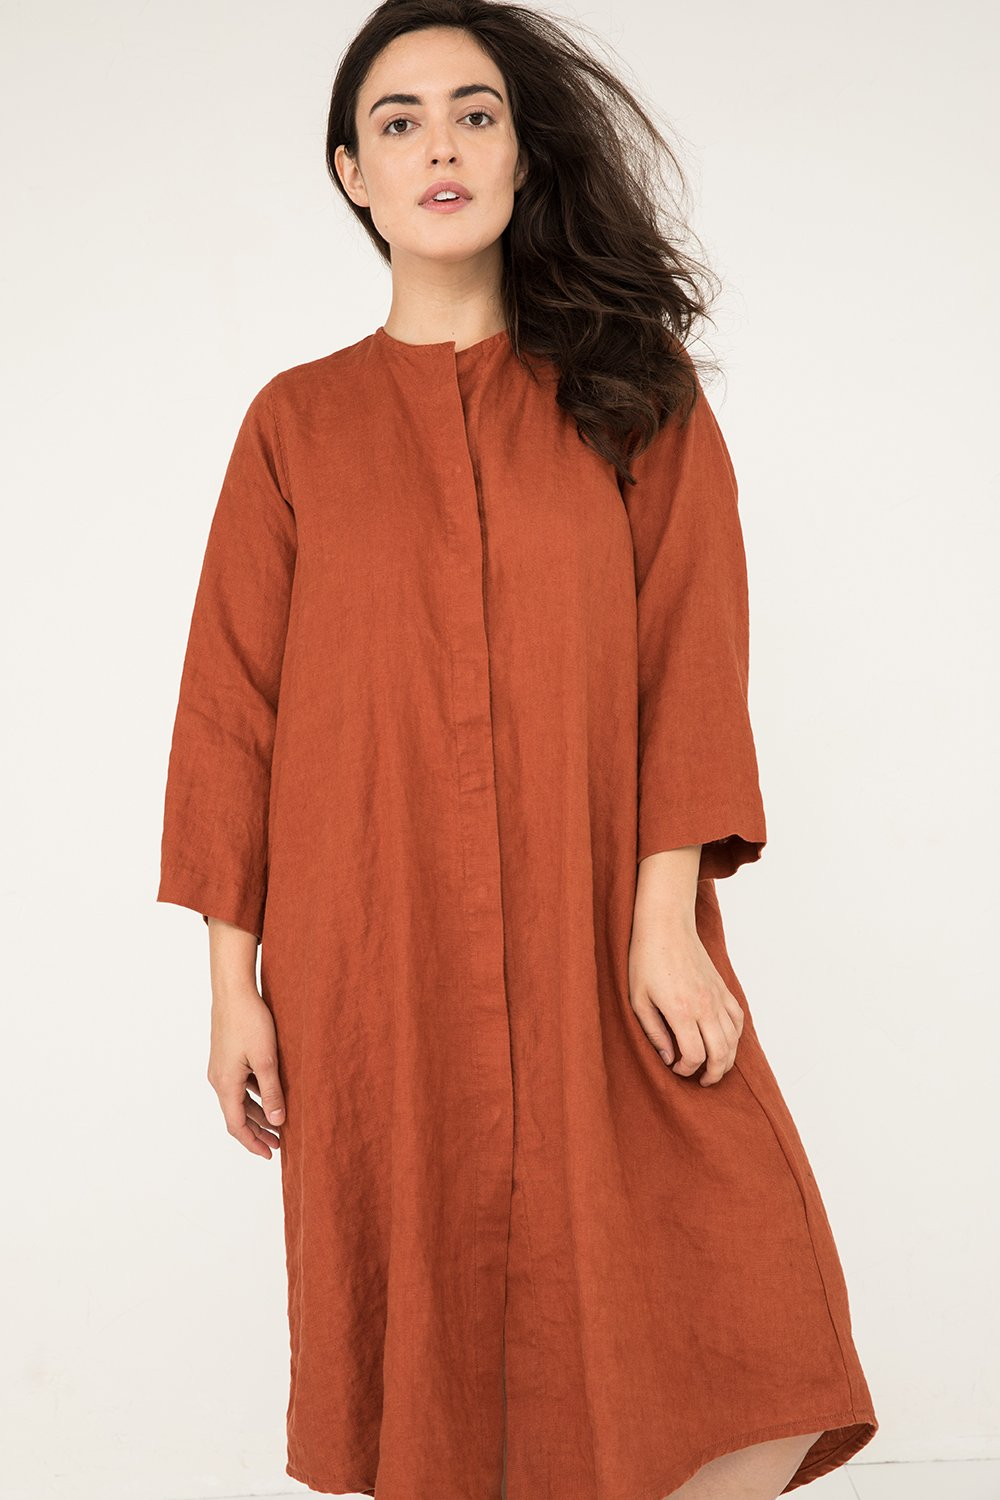 Long Sleeve Kara Snap Dress in Midweight Linen Terra - Natalie-M